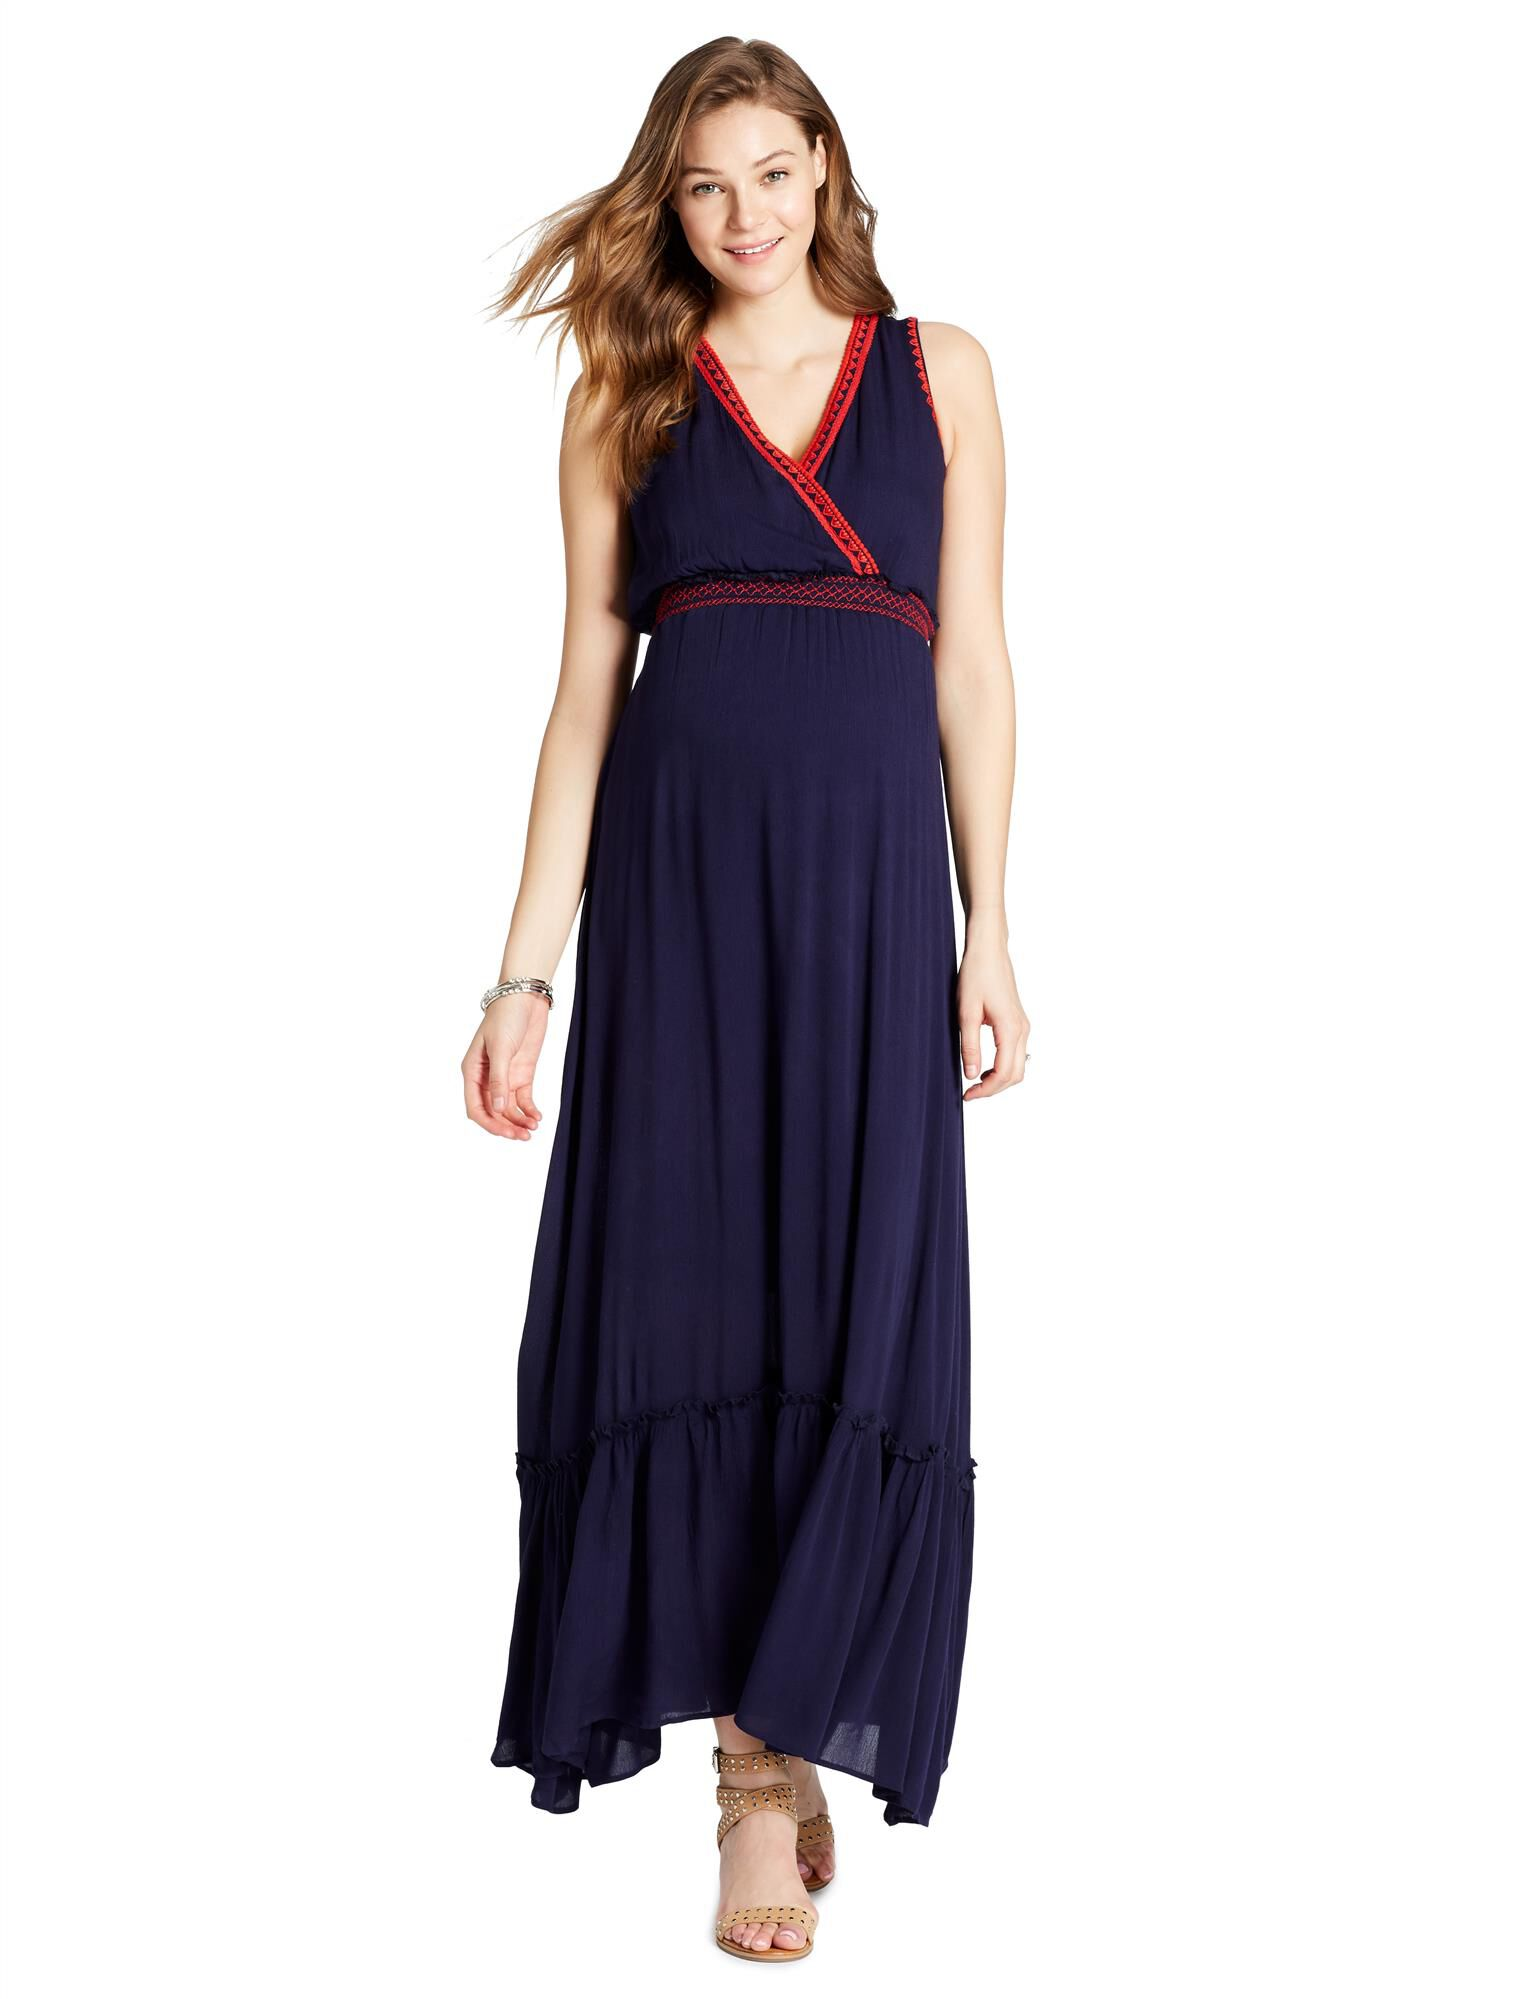 Jessica Simpson Decorative Trim Maternity Dress